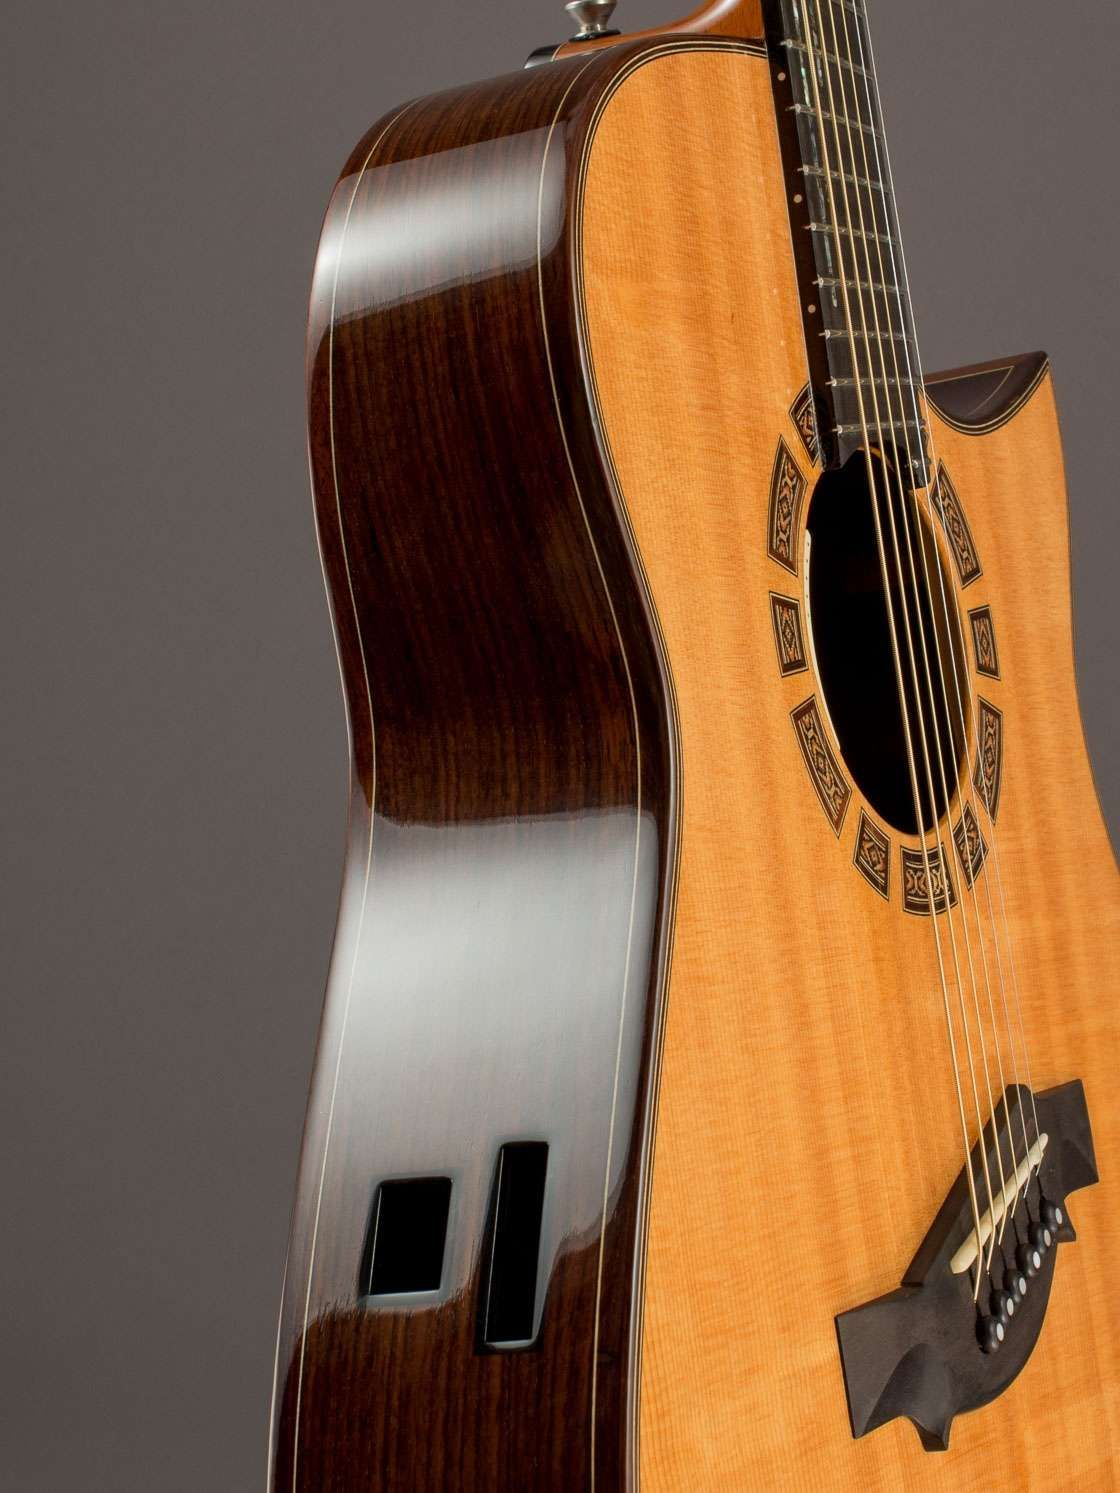 1996 Somogyi Thin Modified Dreadnought Indian Rosewood Sitka Spruce Guitar Sitka Sitka Spruce